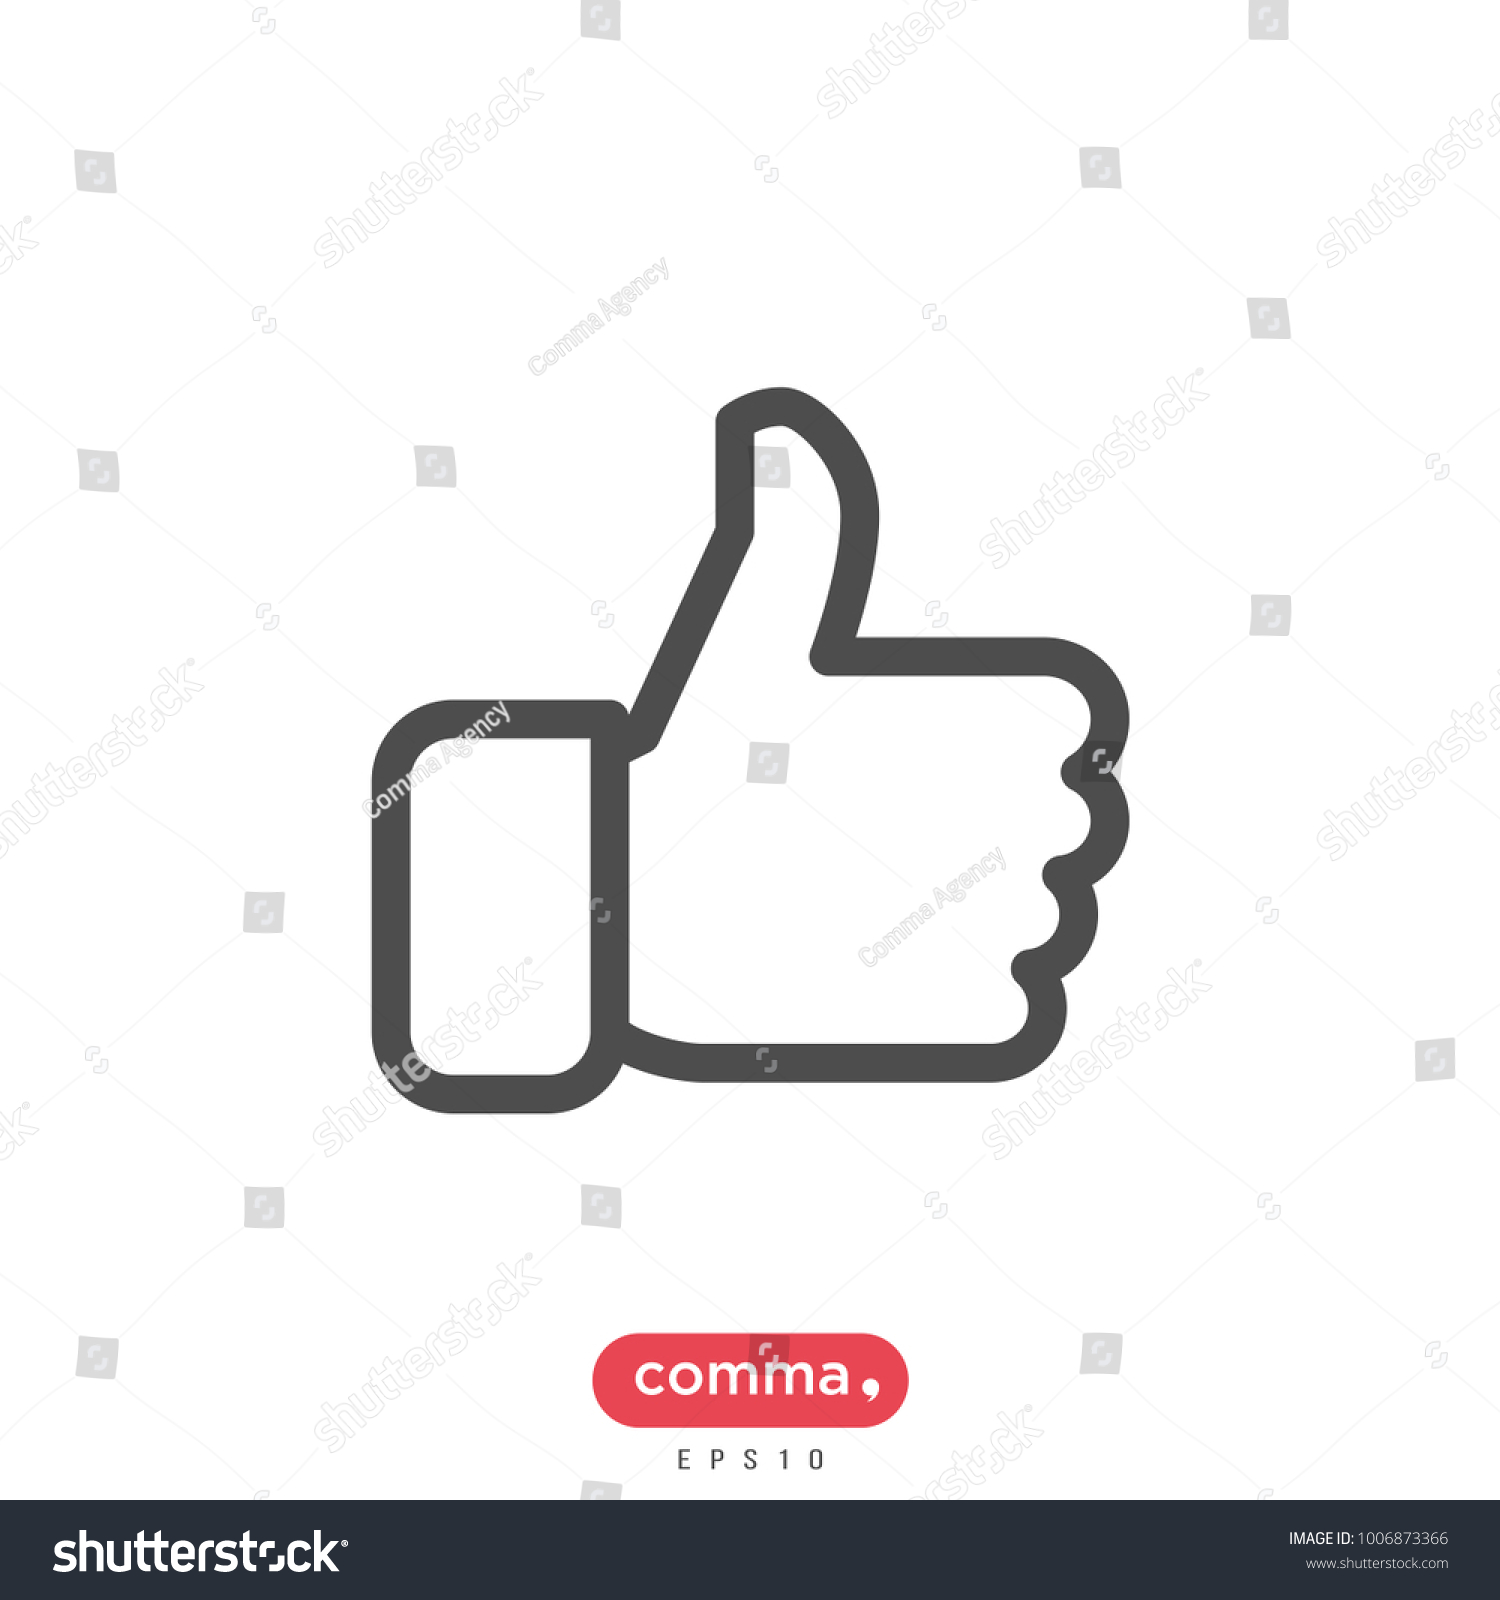 Thumbs vector icon like symbol stock vector 1006873366 shutterstock thumbs up vector icon like symbol buycottarizona Choice Image